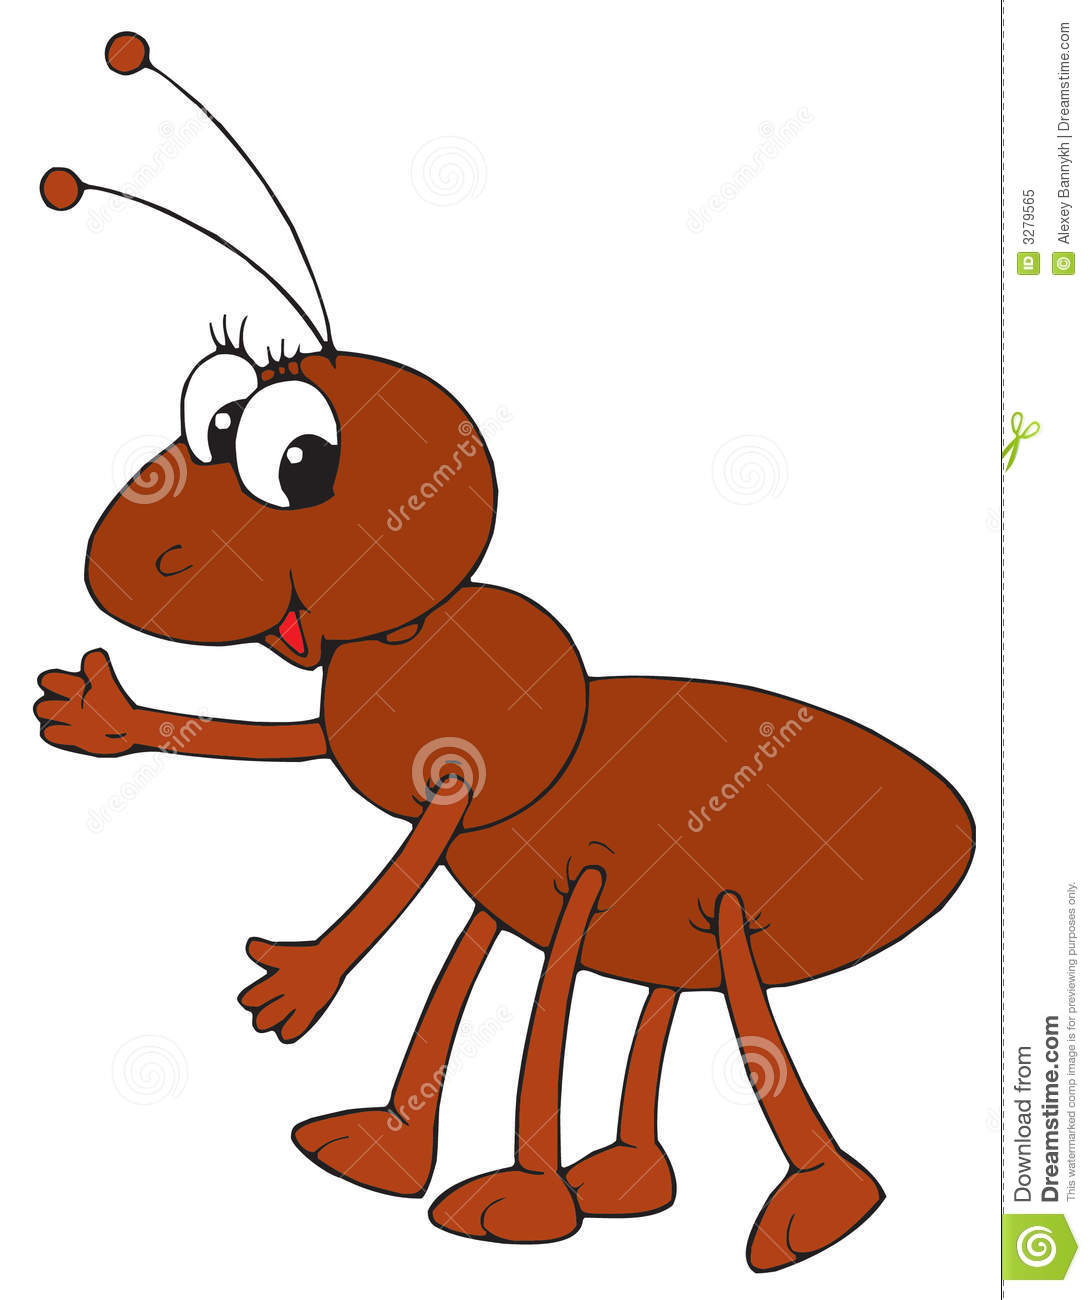 Ant clipart happy. Brown